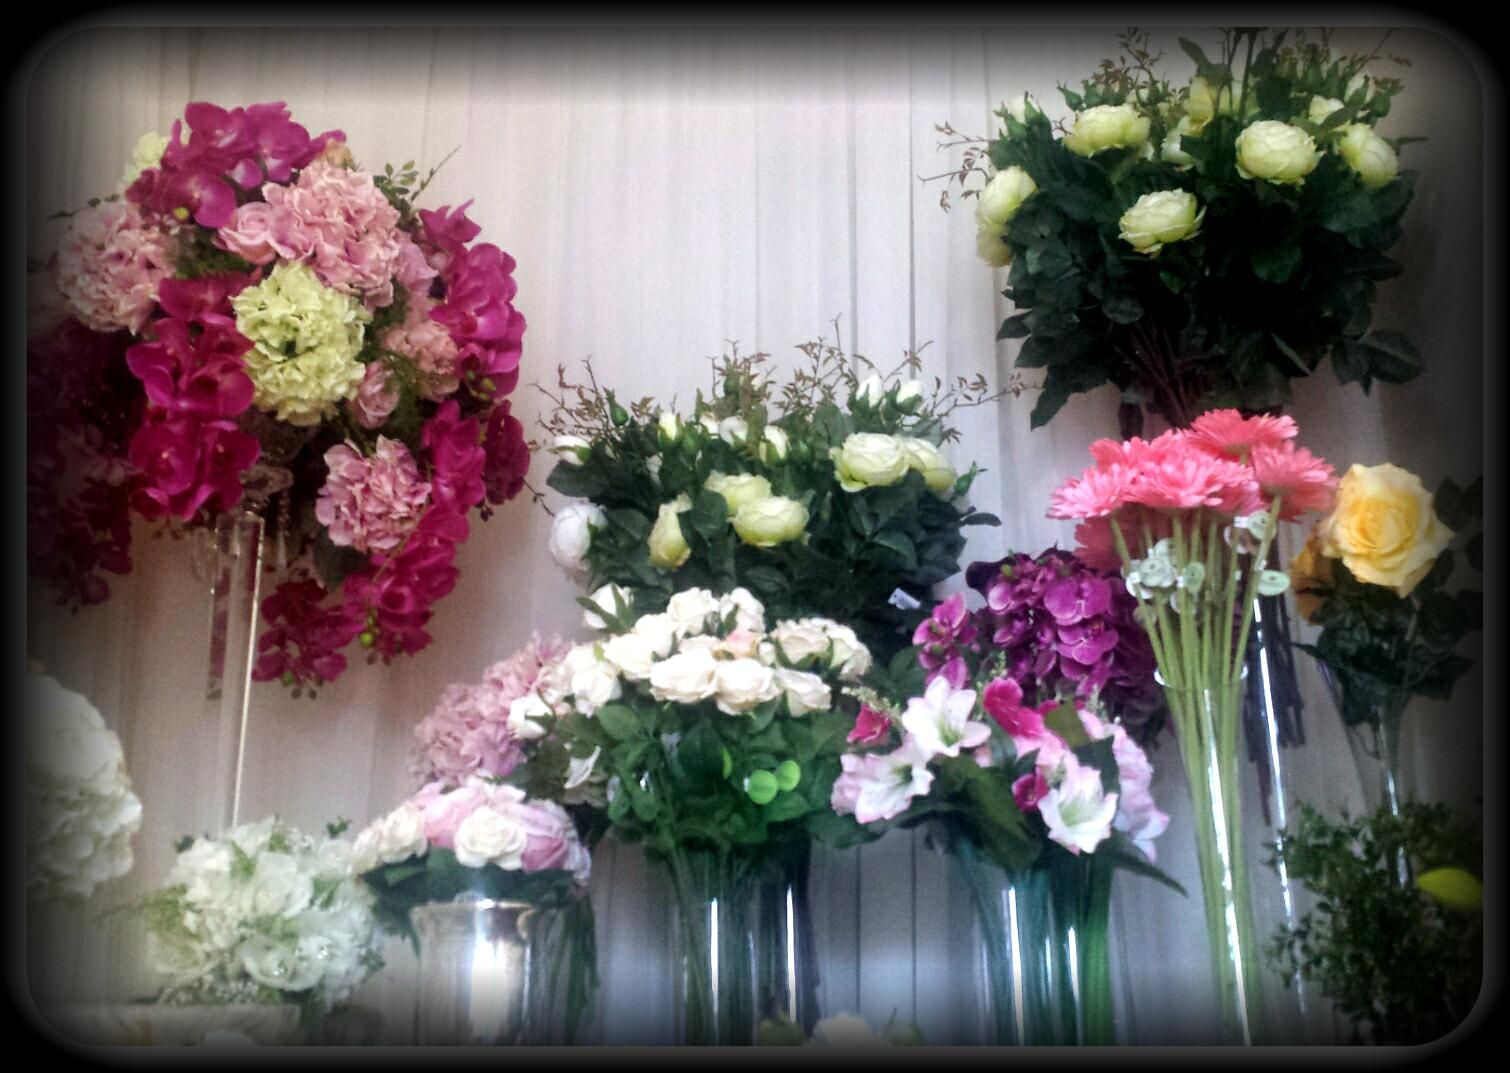 In House Flower Designs Save Money By Renting Good Quality Silk